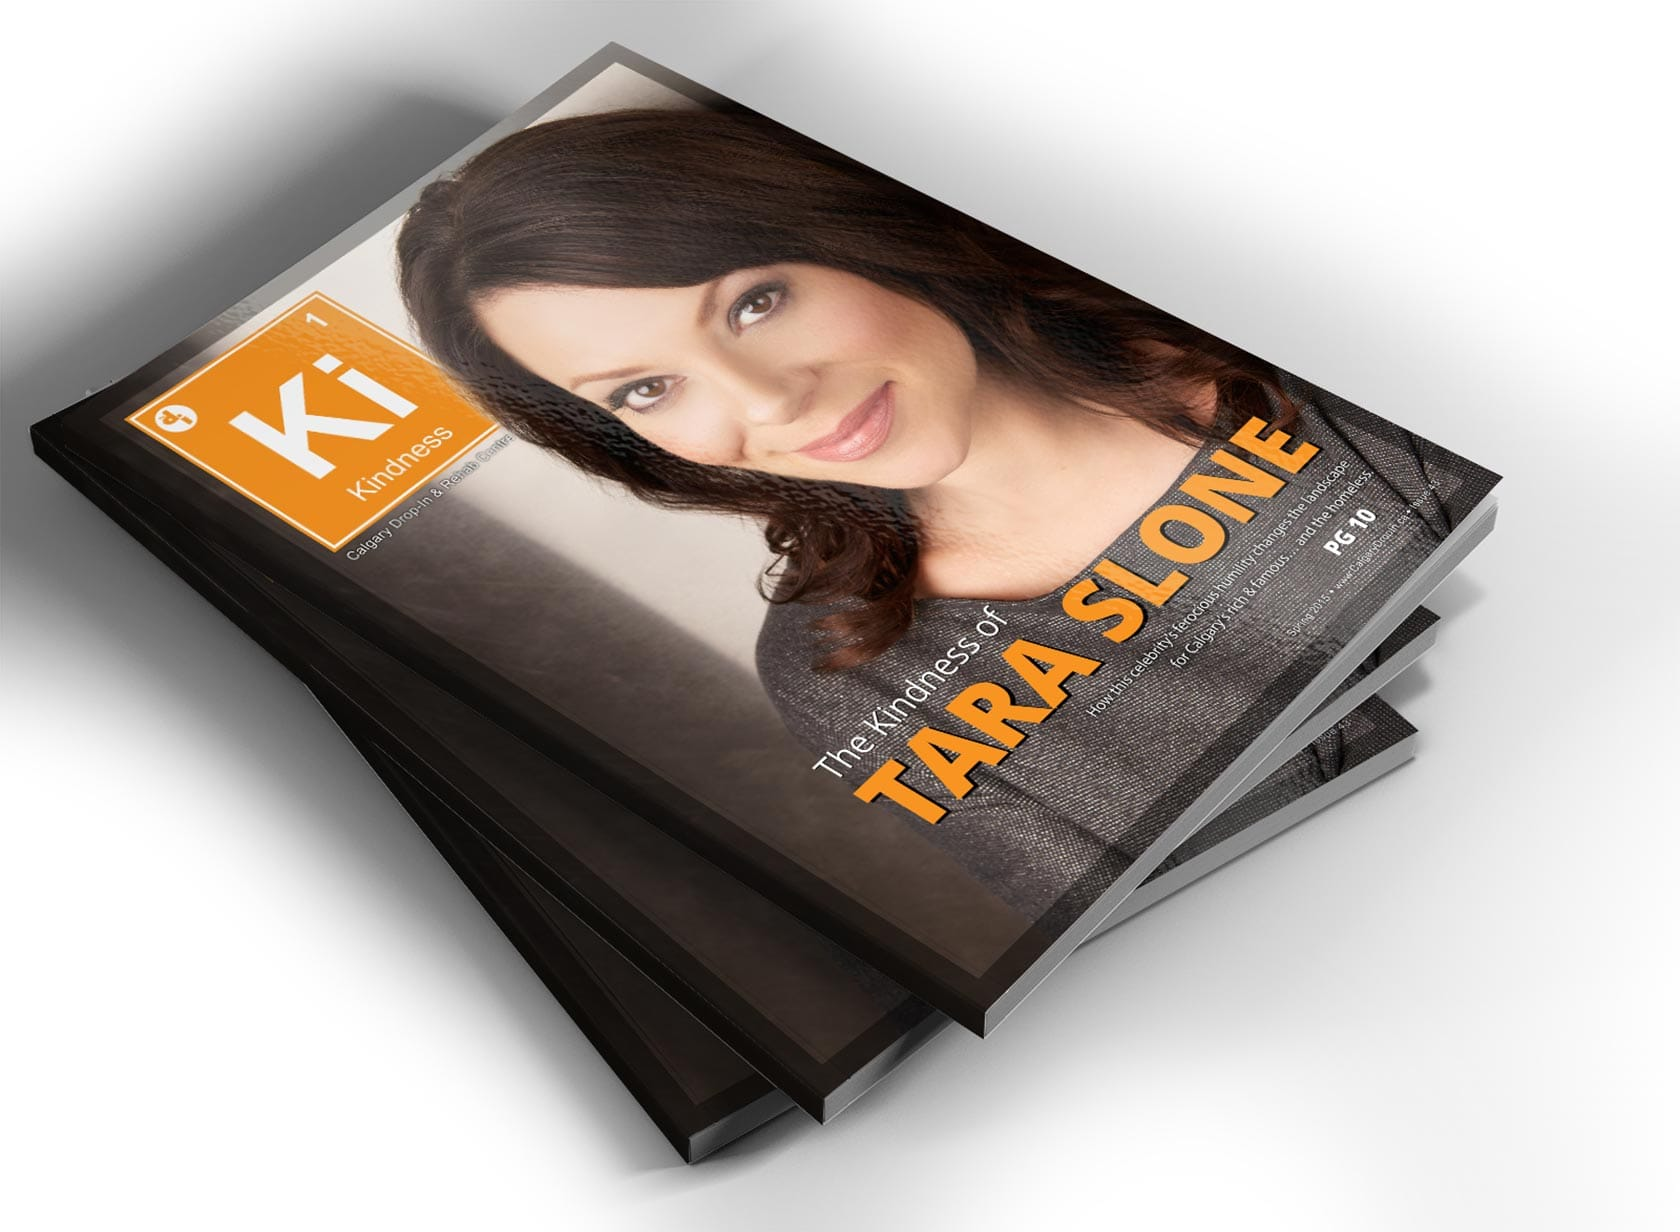 KM Project Image 02 - Newsletter Redesign - Magazine Cover